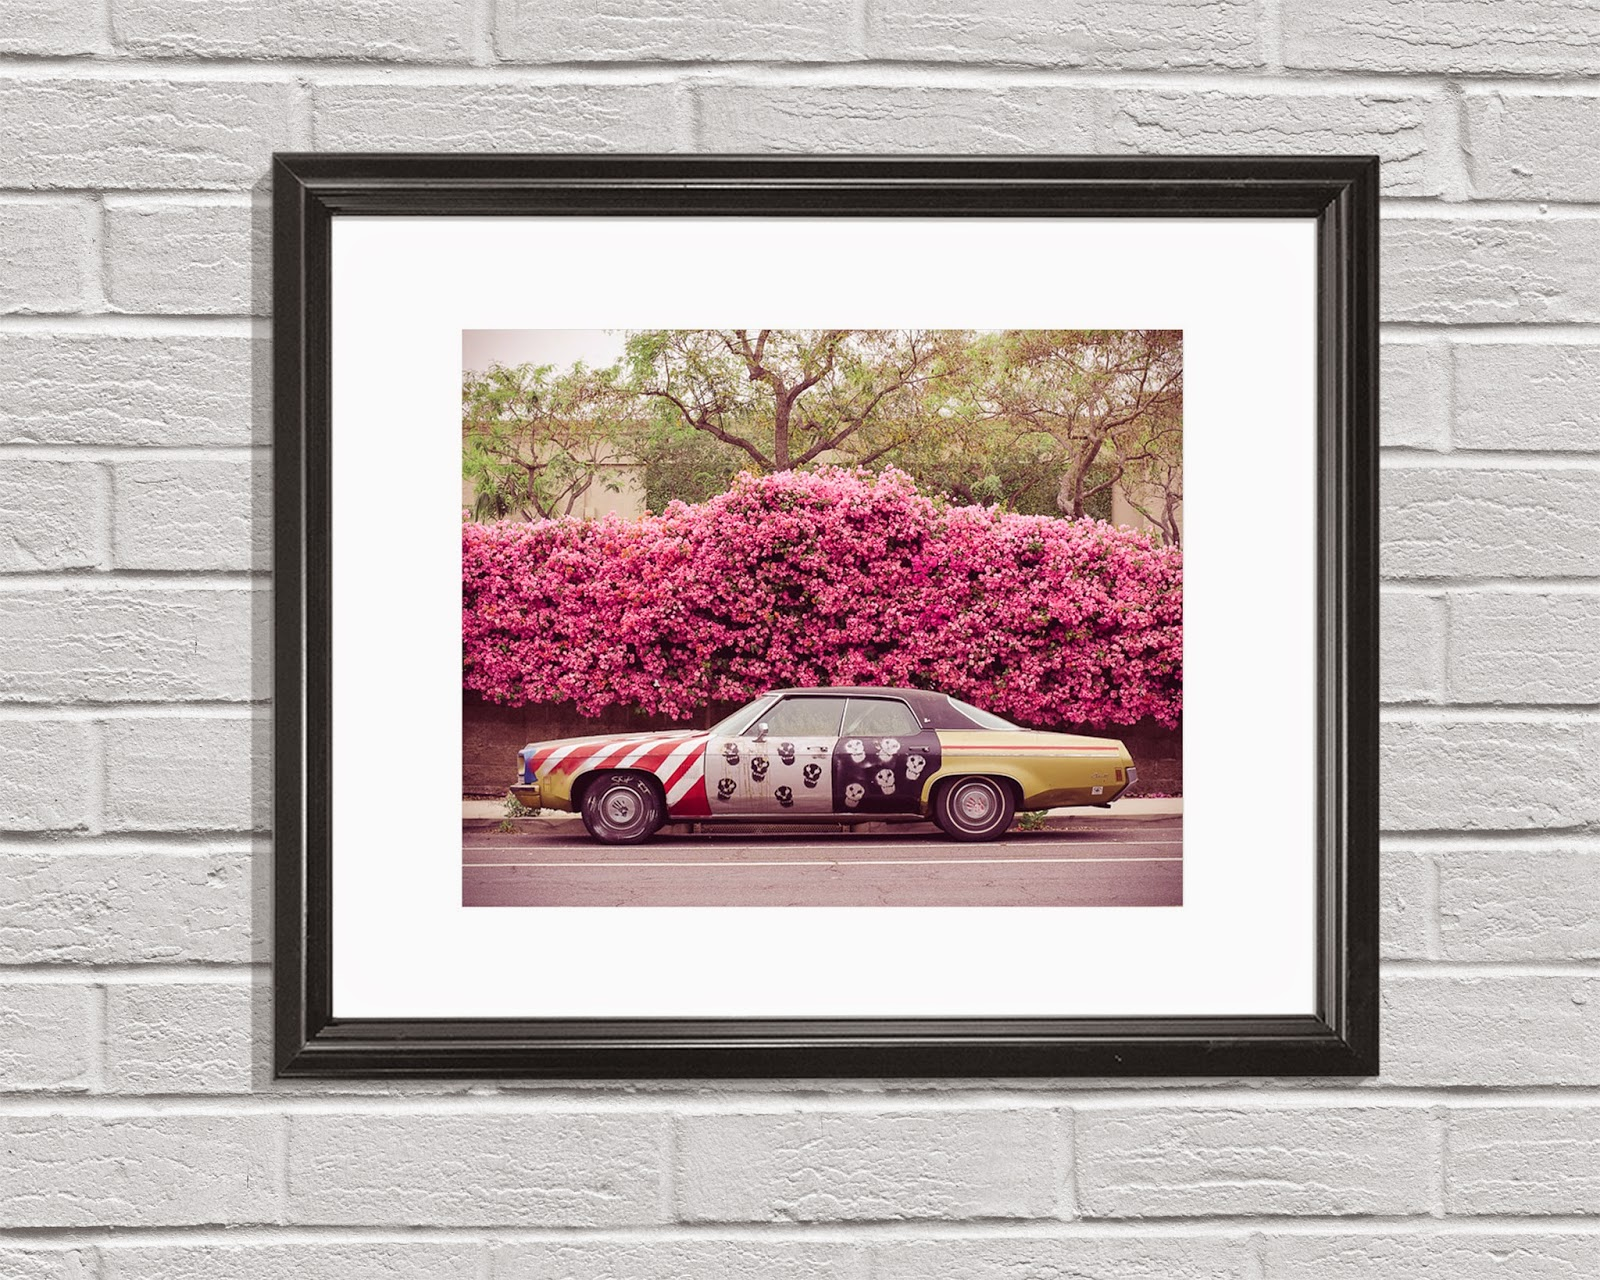 Vintage Muscle Car Photo, Americana Photography, American Flag Art Print, Retro California Wall Art